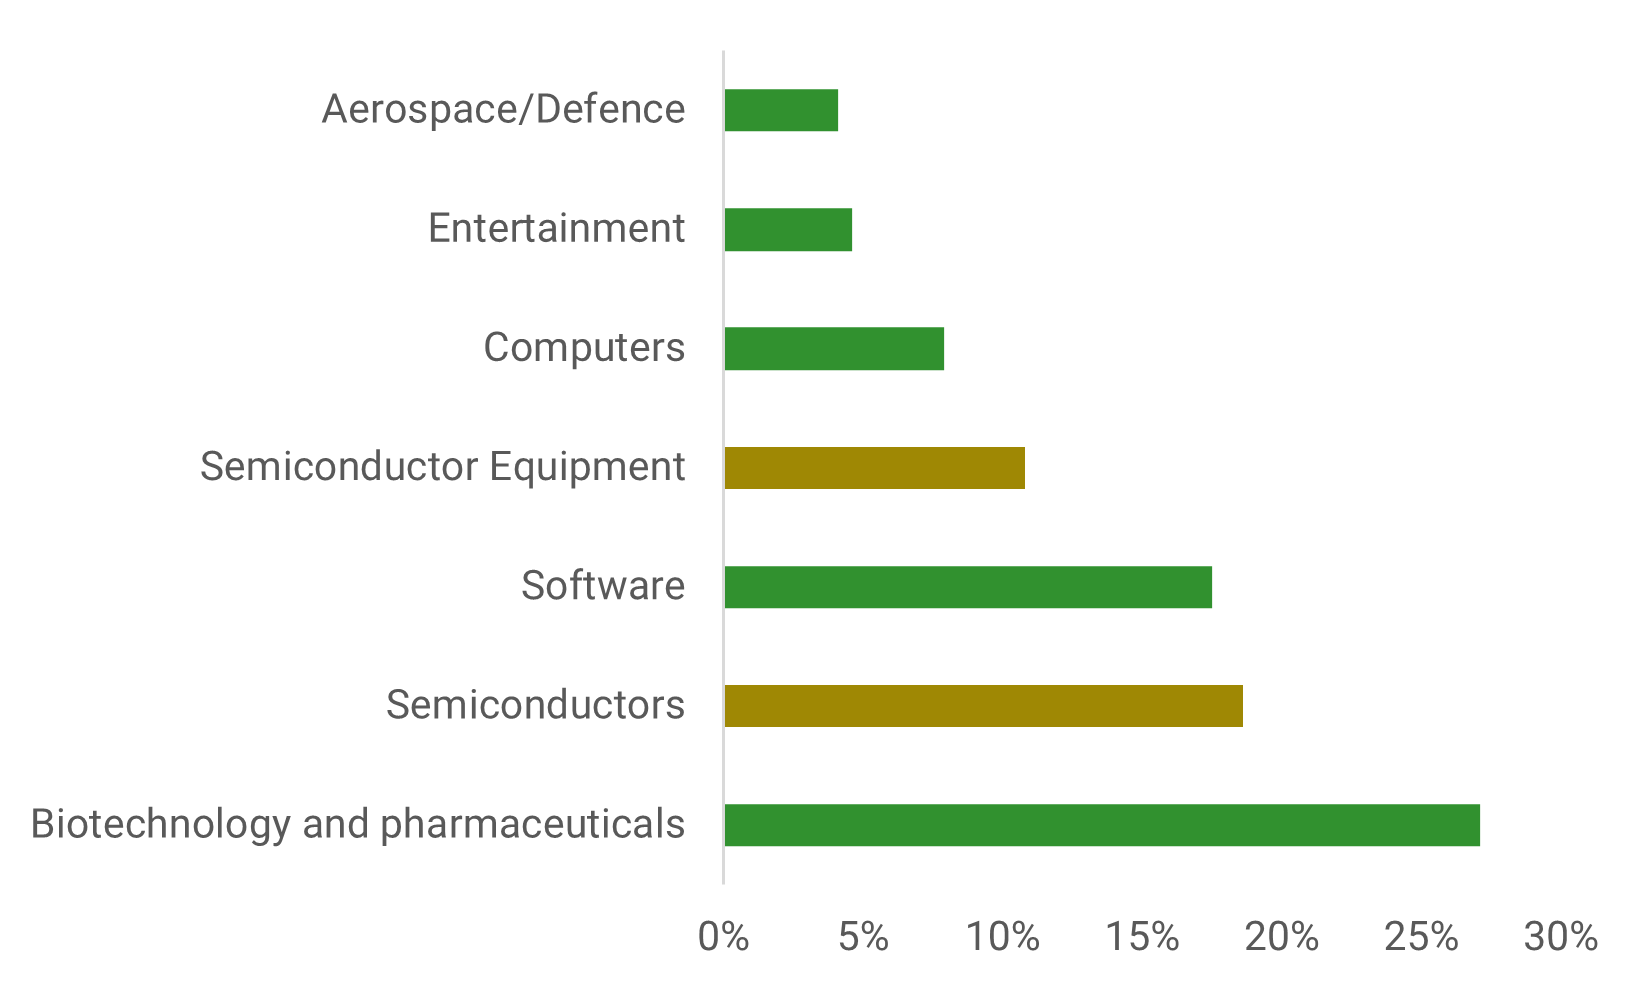 Semiconductors_have_some_of_the_highest_R_and_D_spend_of_any_high_tech_industry_94e1d95dd8.png